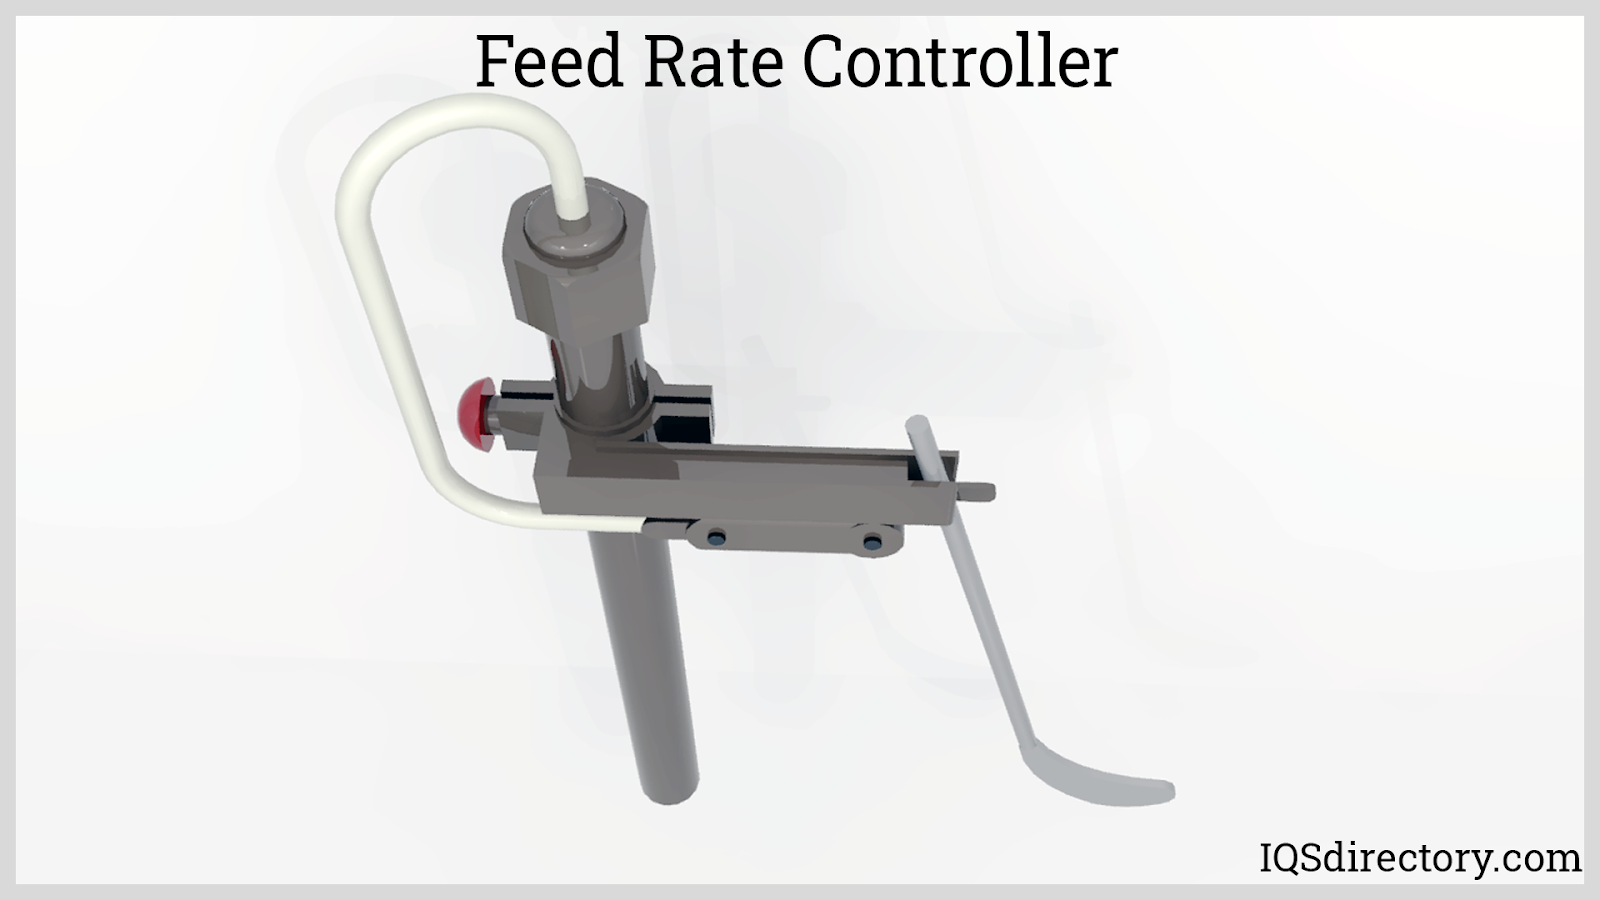 Feed Rate Controller